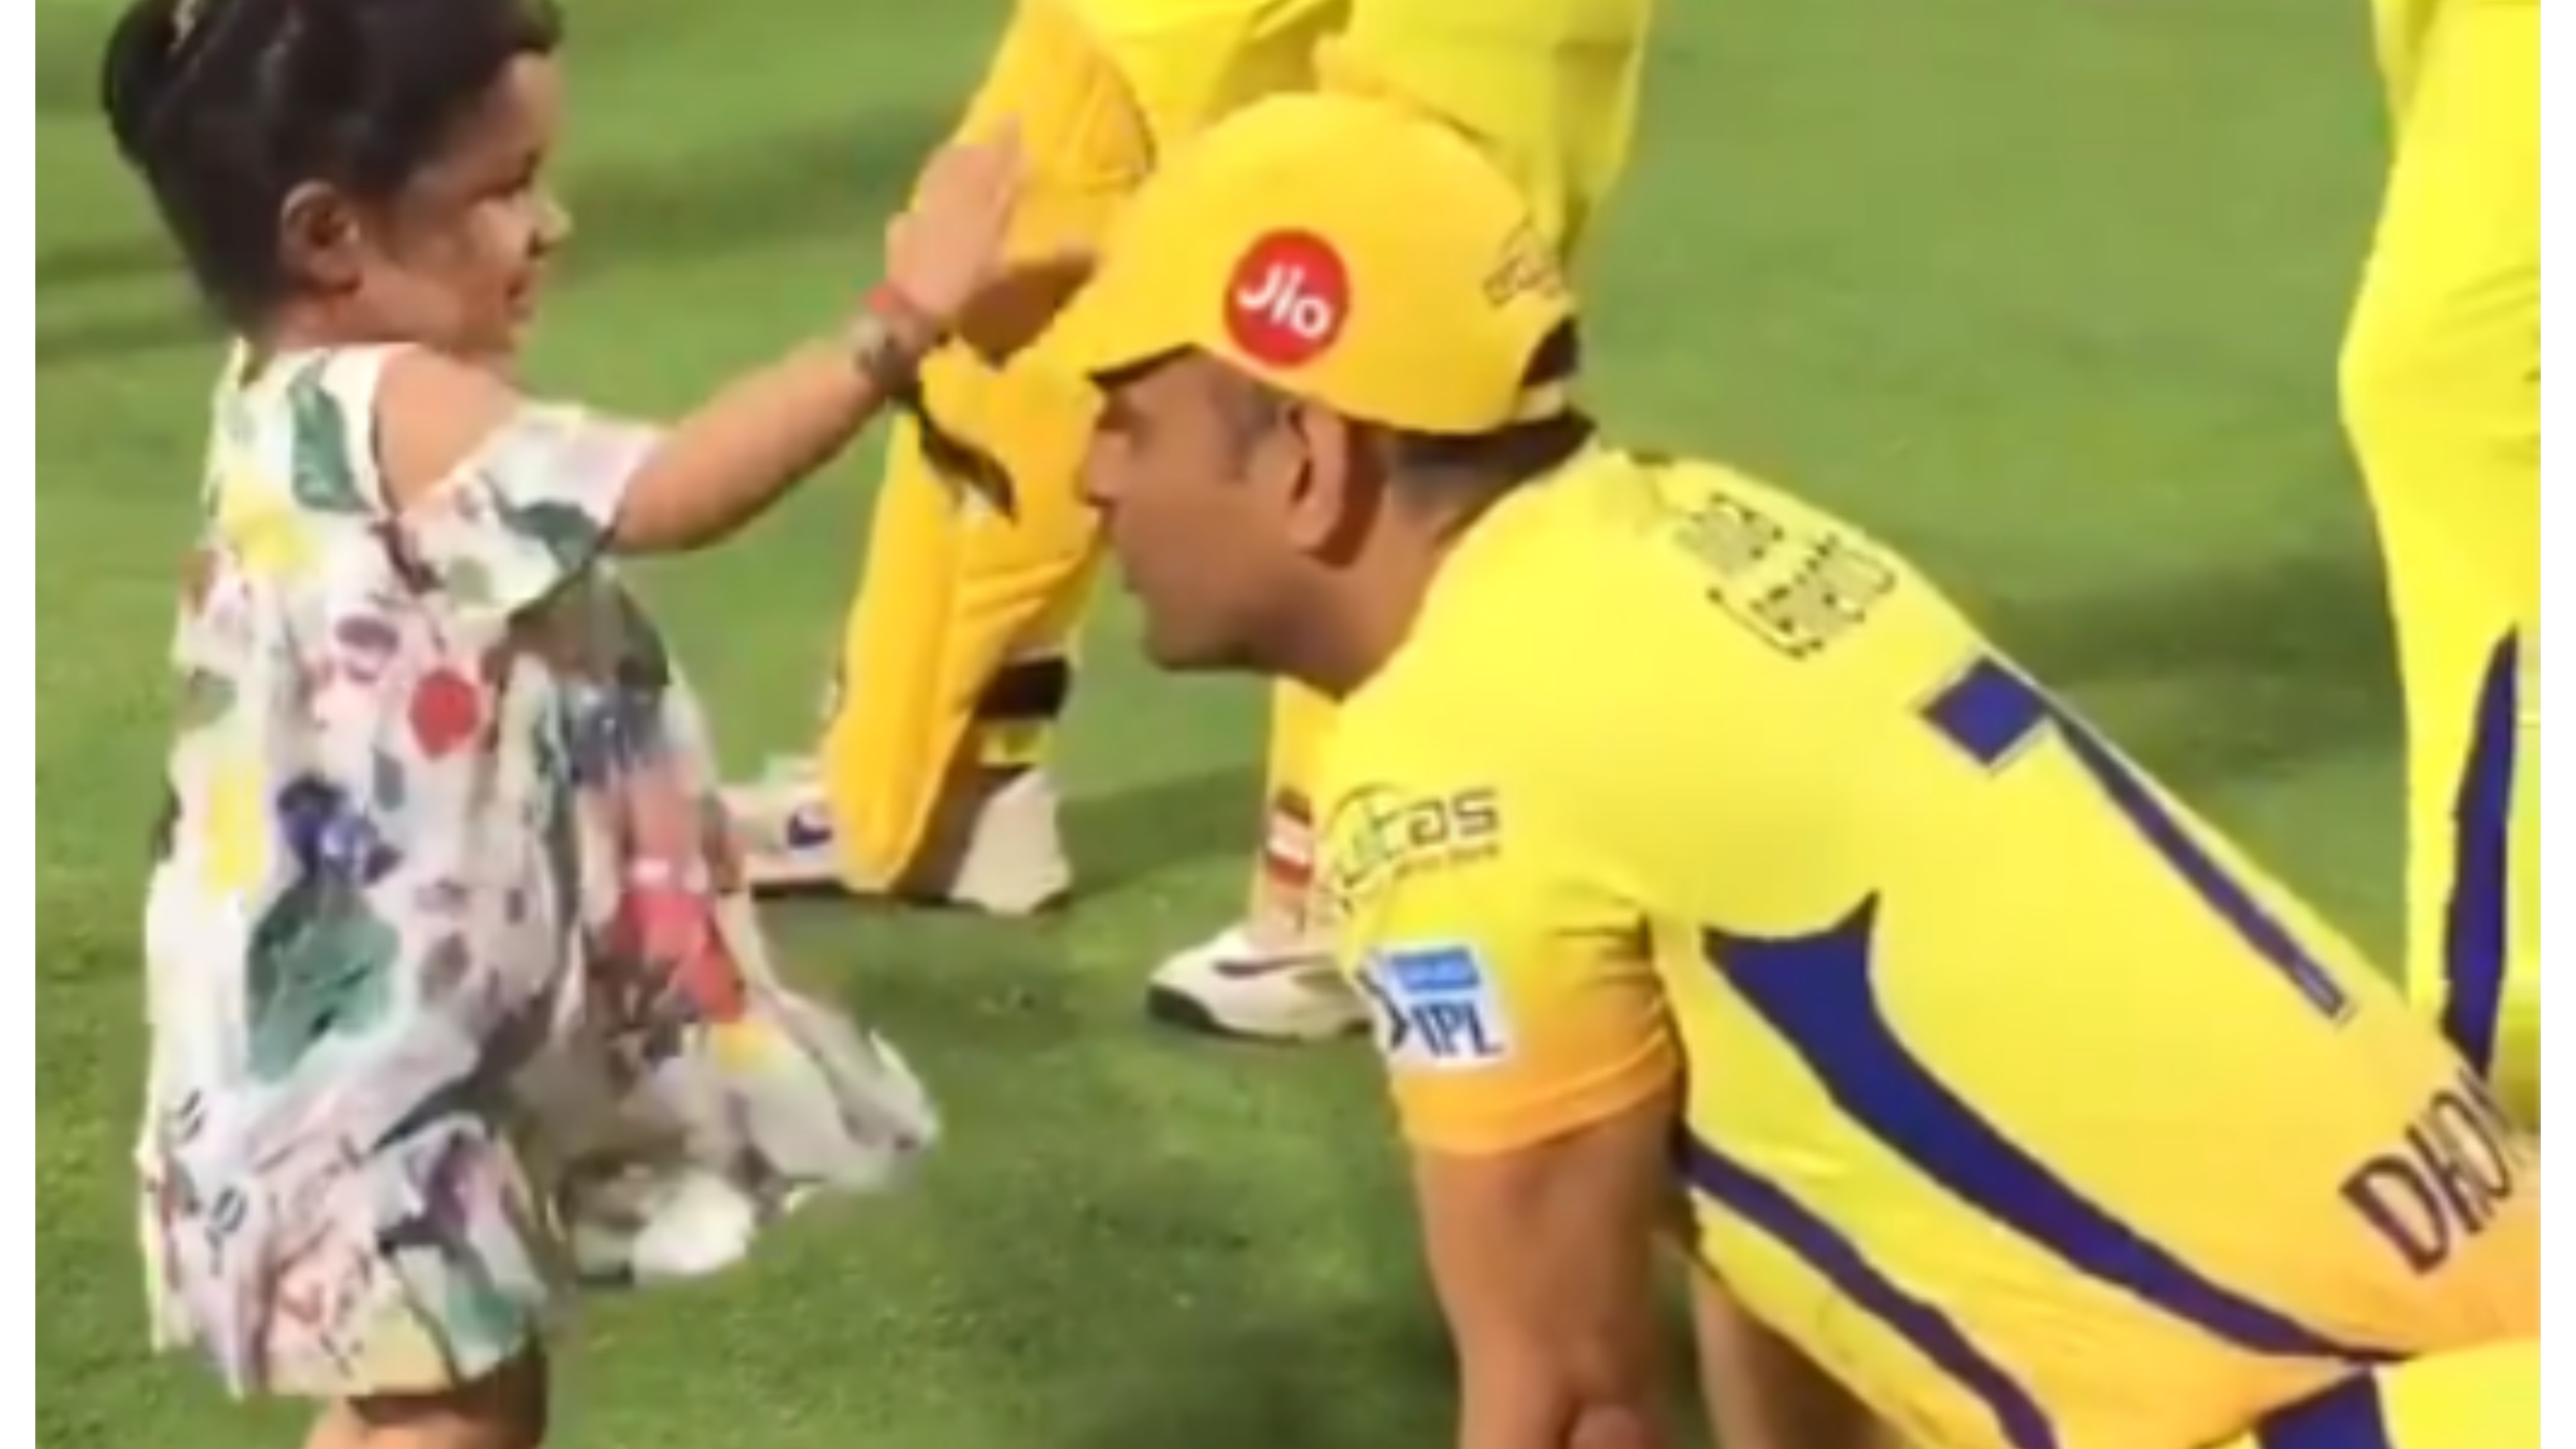 IPL 2018: Watch – MS Dhoni shares light-hearted moment with daughter Ziva after CSK's win over KXIP